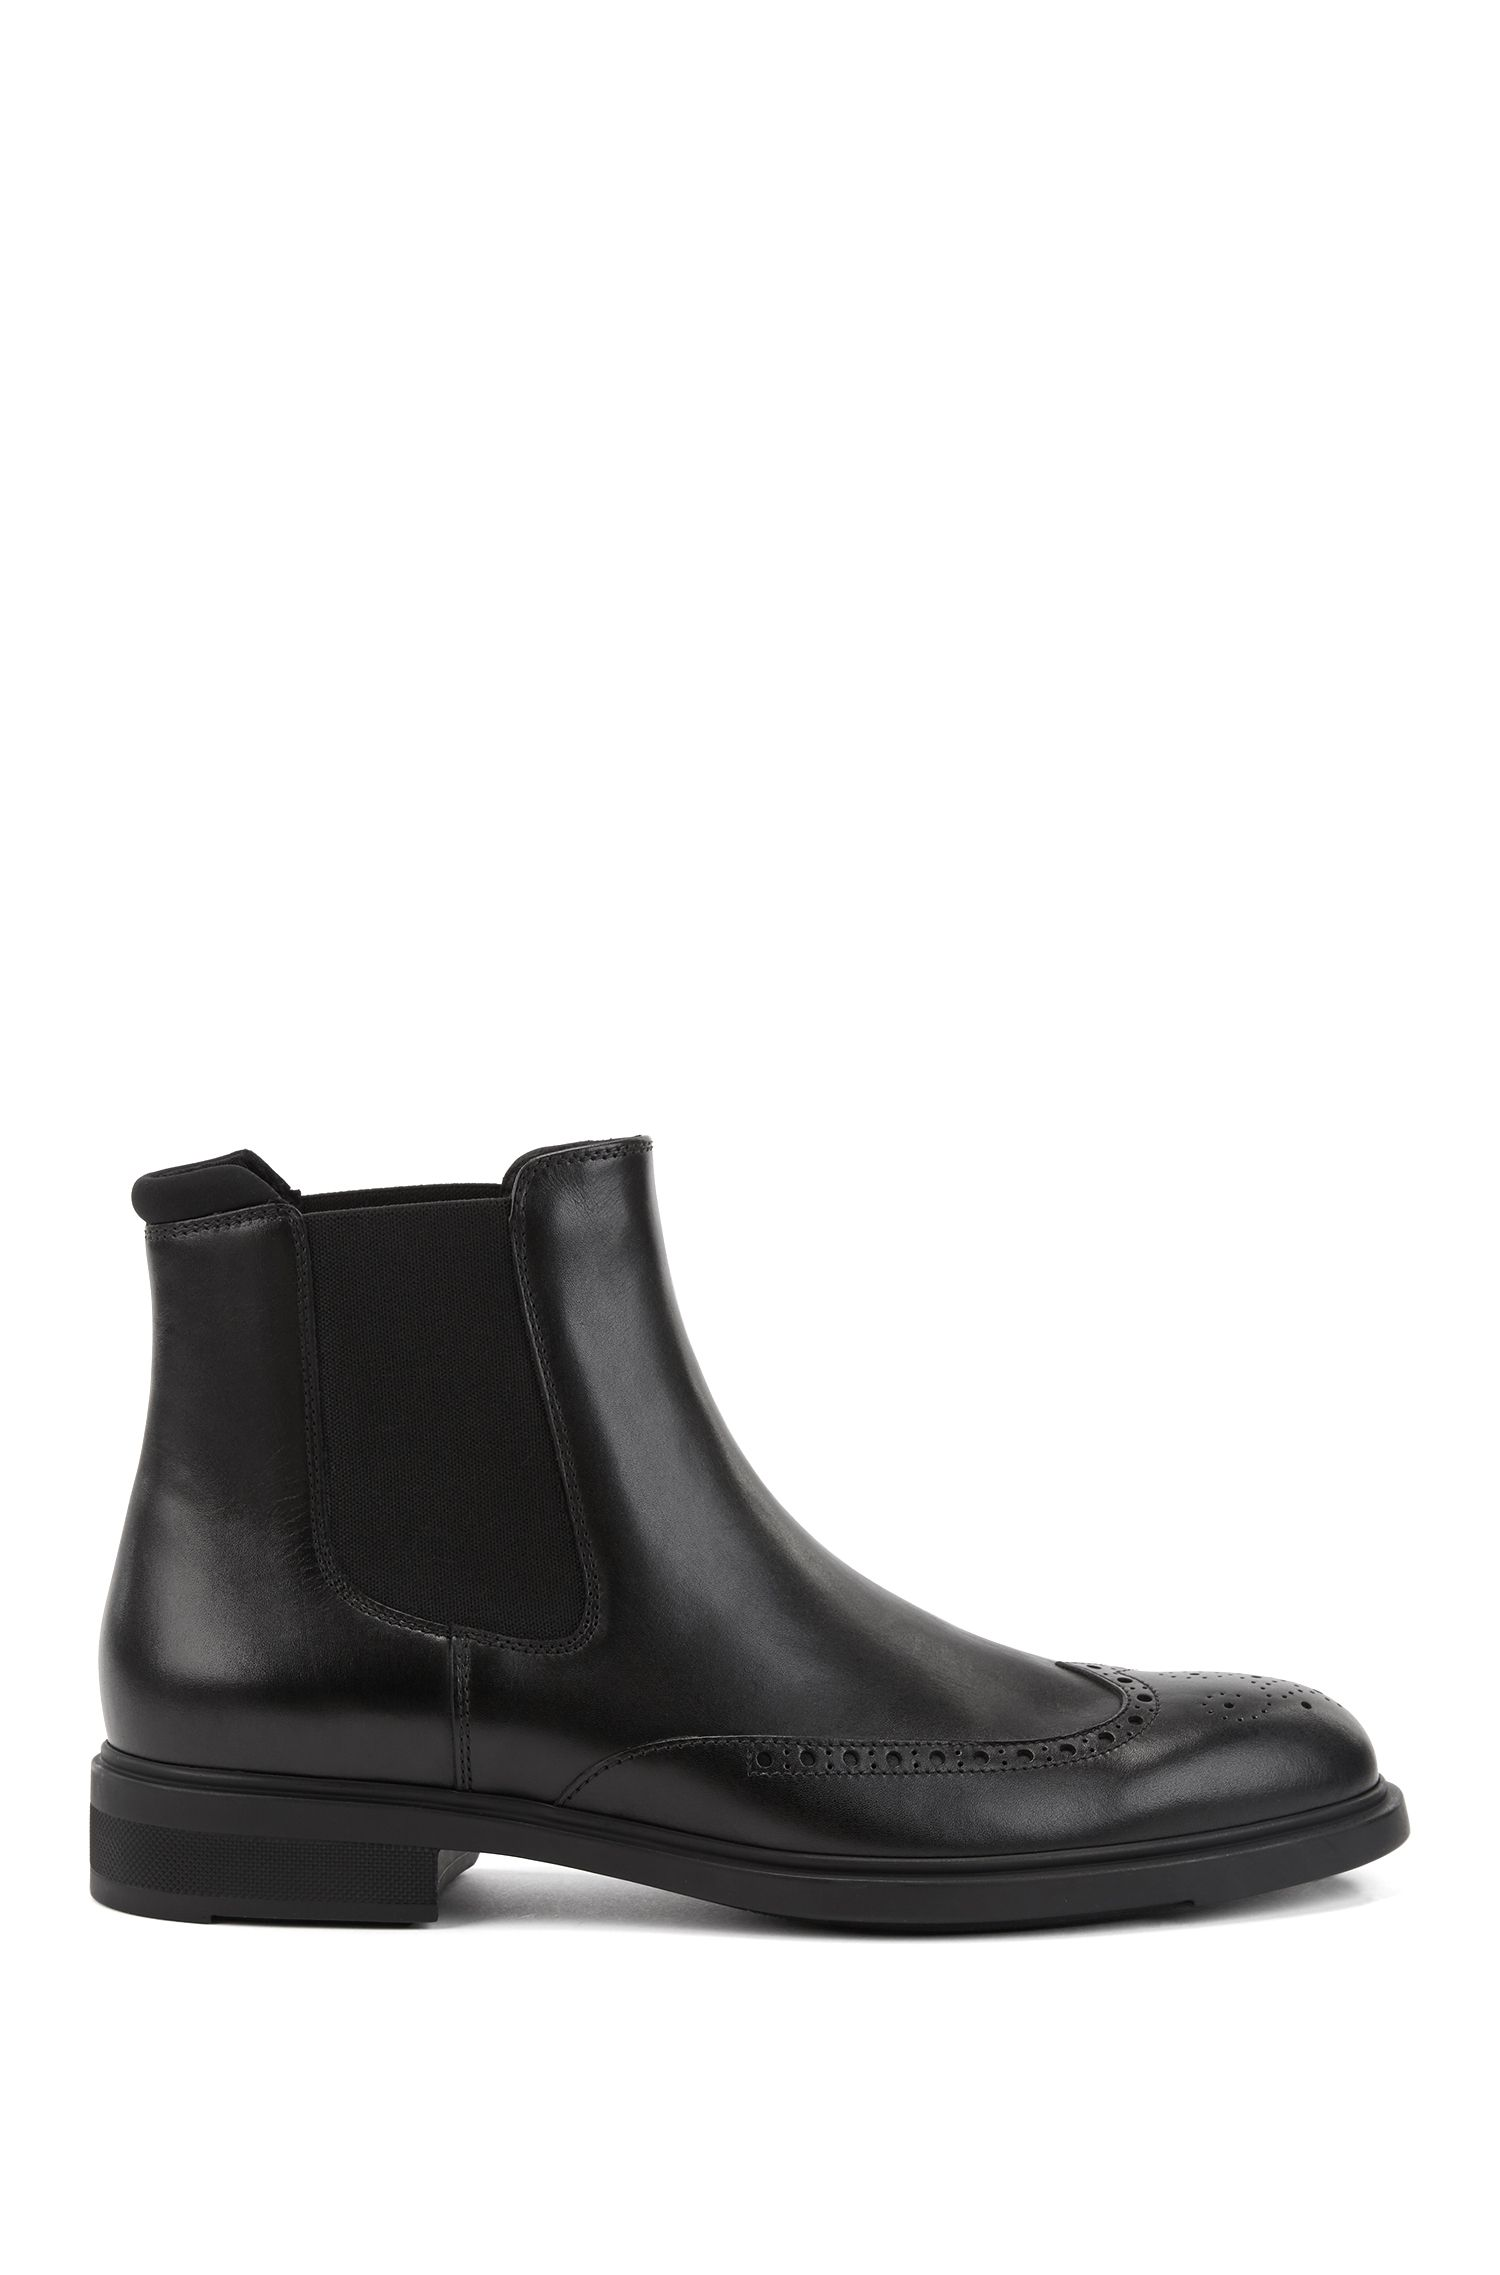 Chelsea boots in calf leather with brogue details